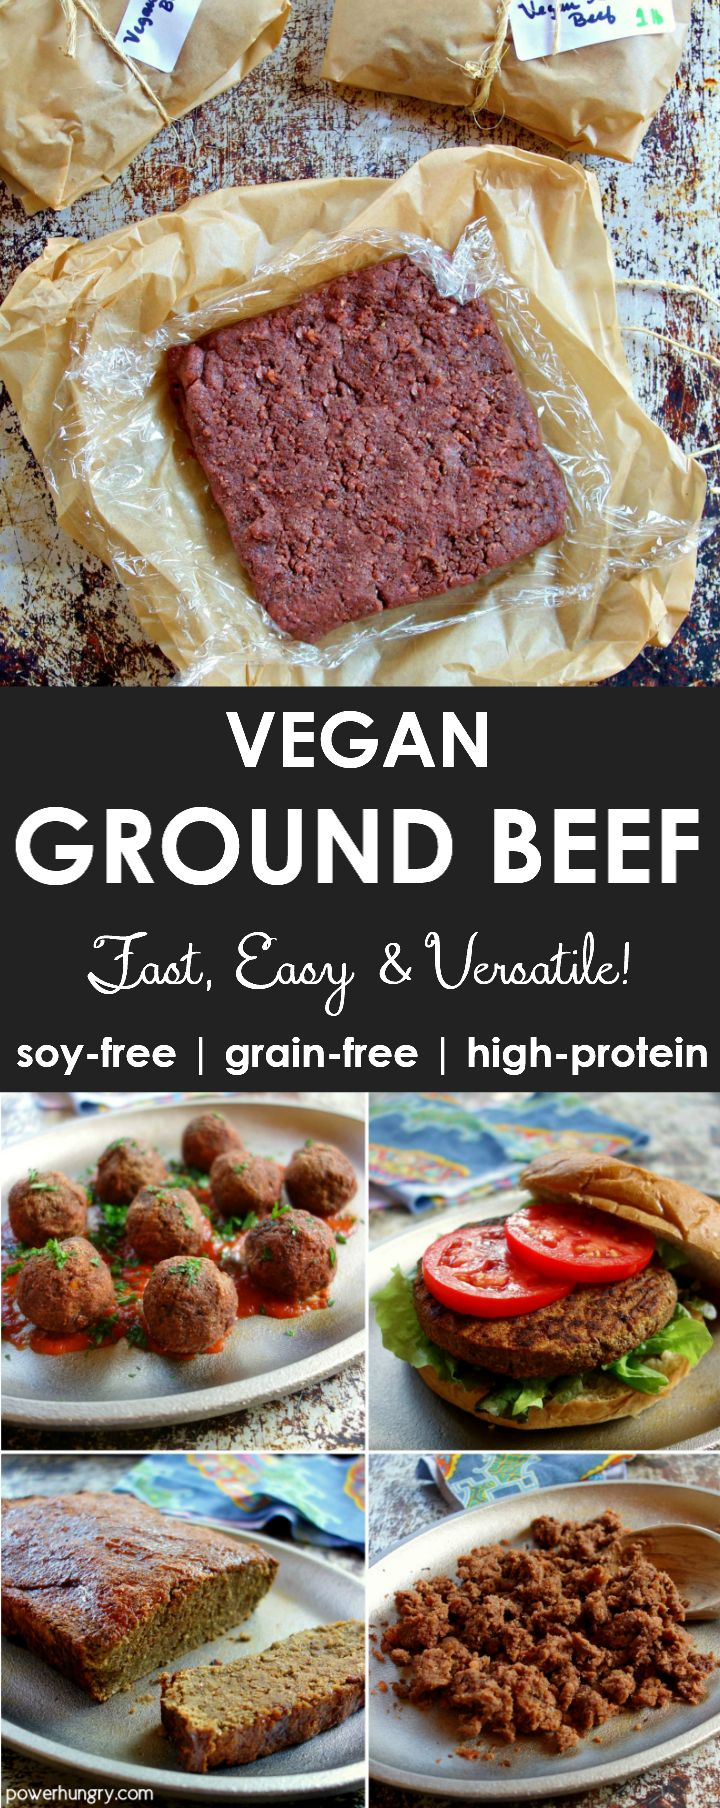 Vegan Ground Beef {soy-free, grain-free, high protein}